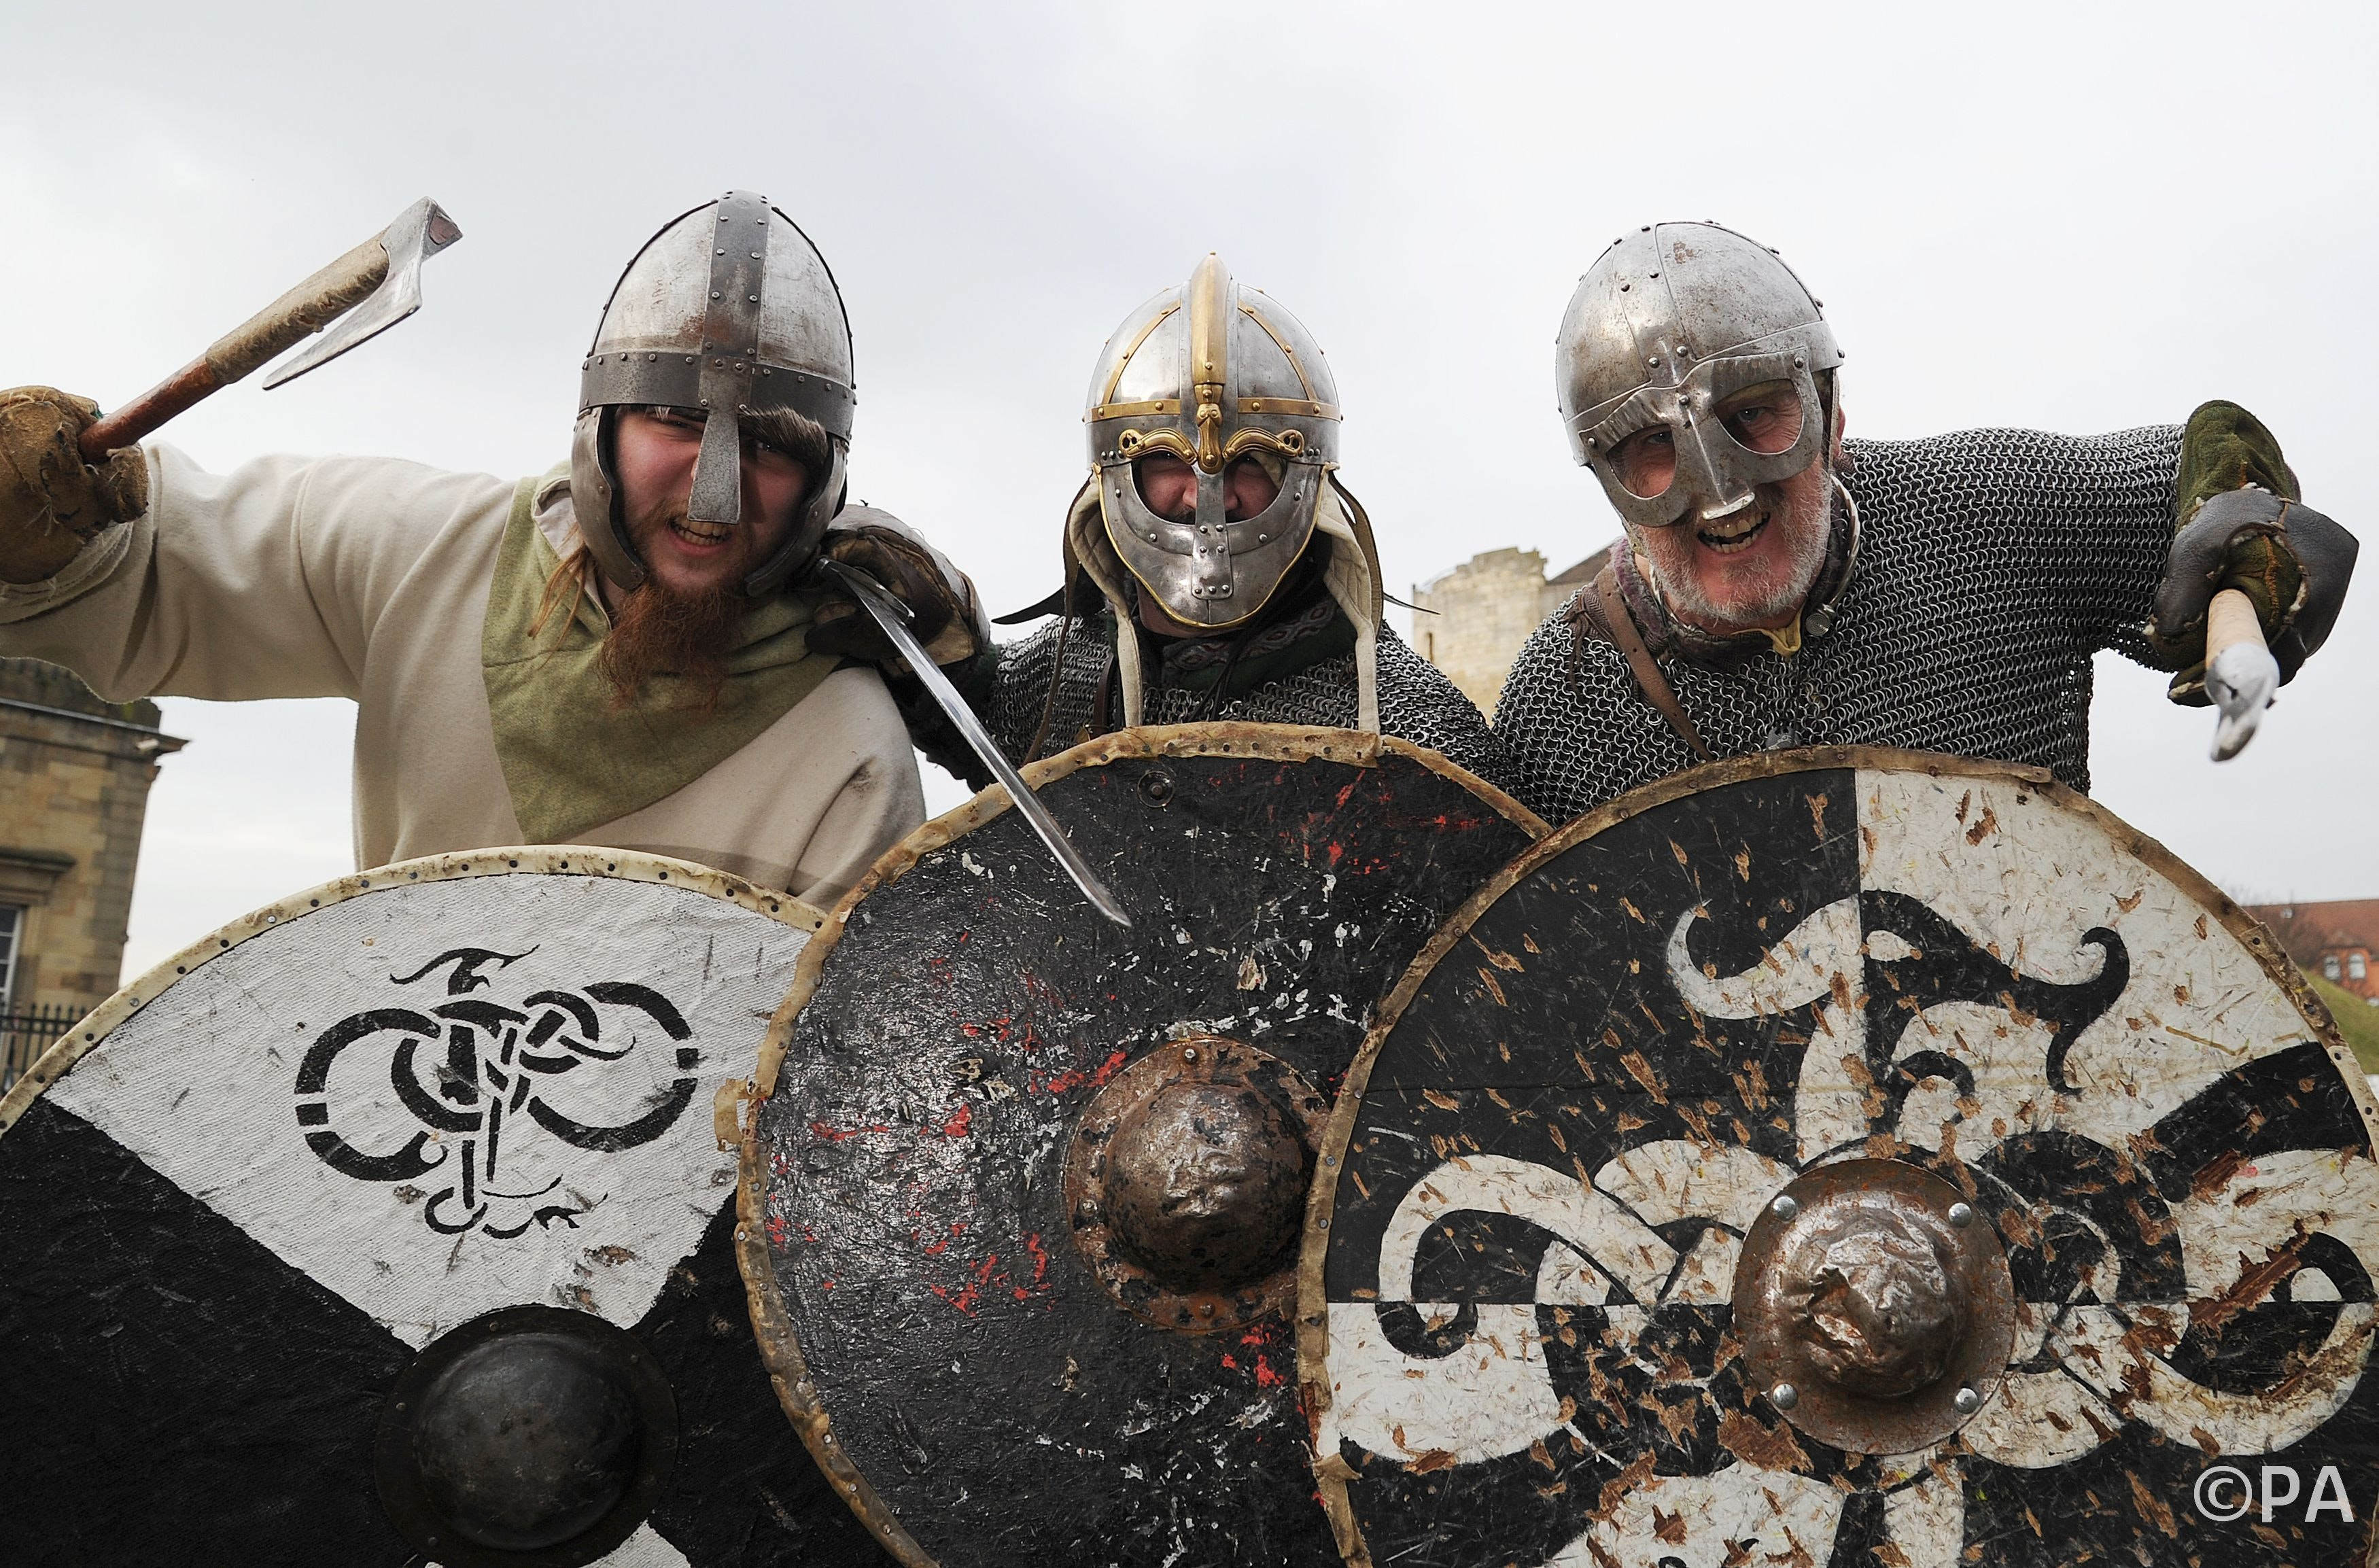 vikings were pioneers of craft and international trade, not just